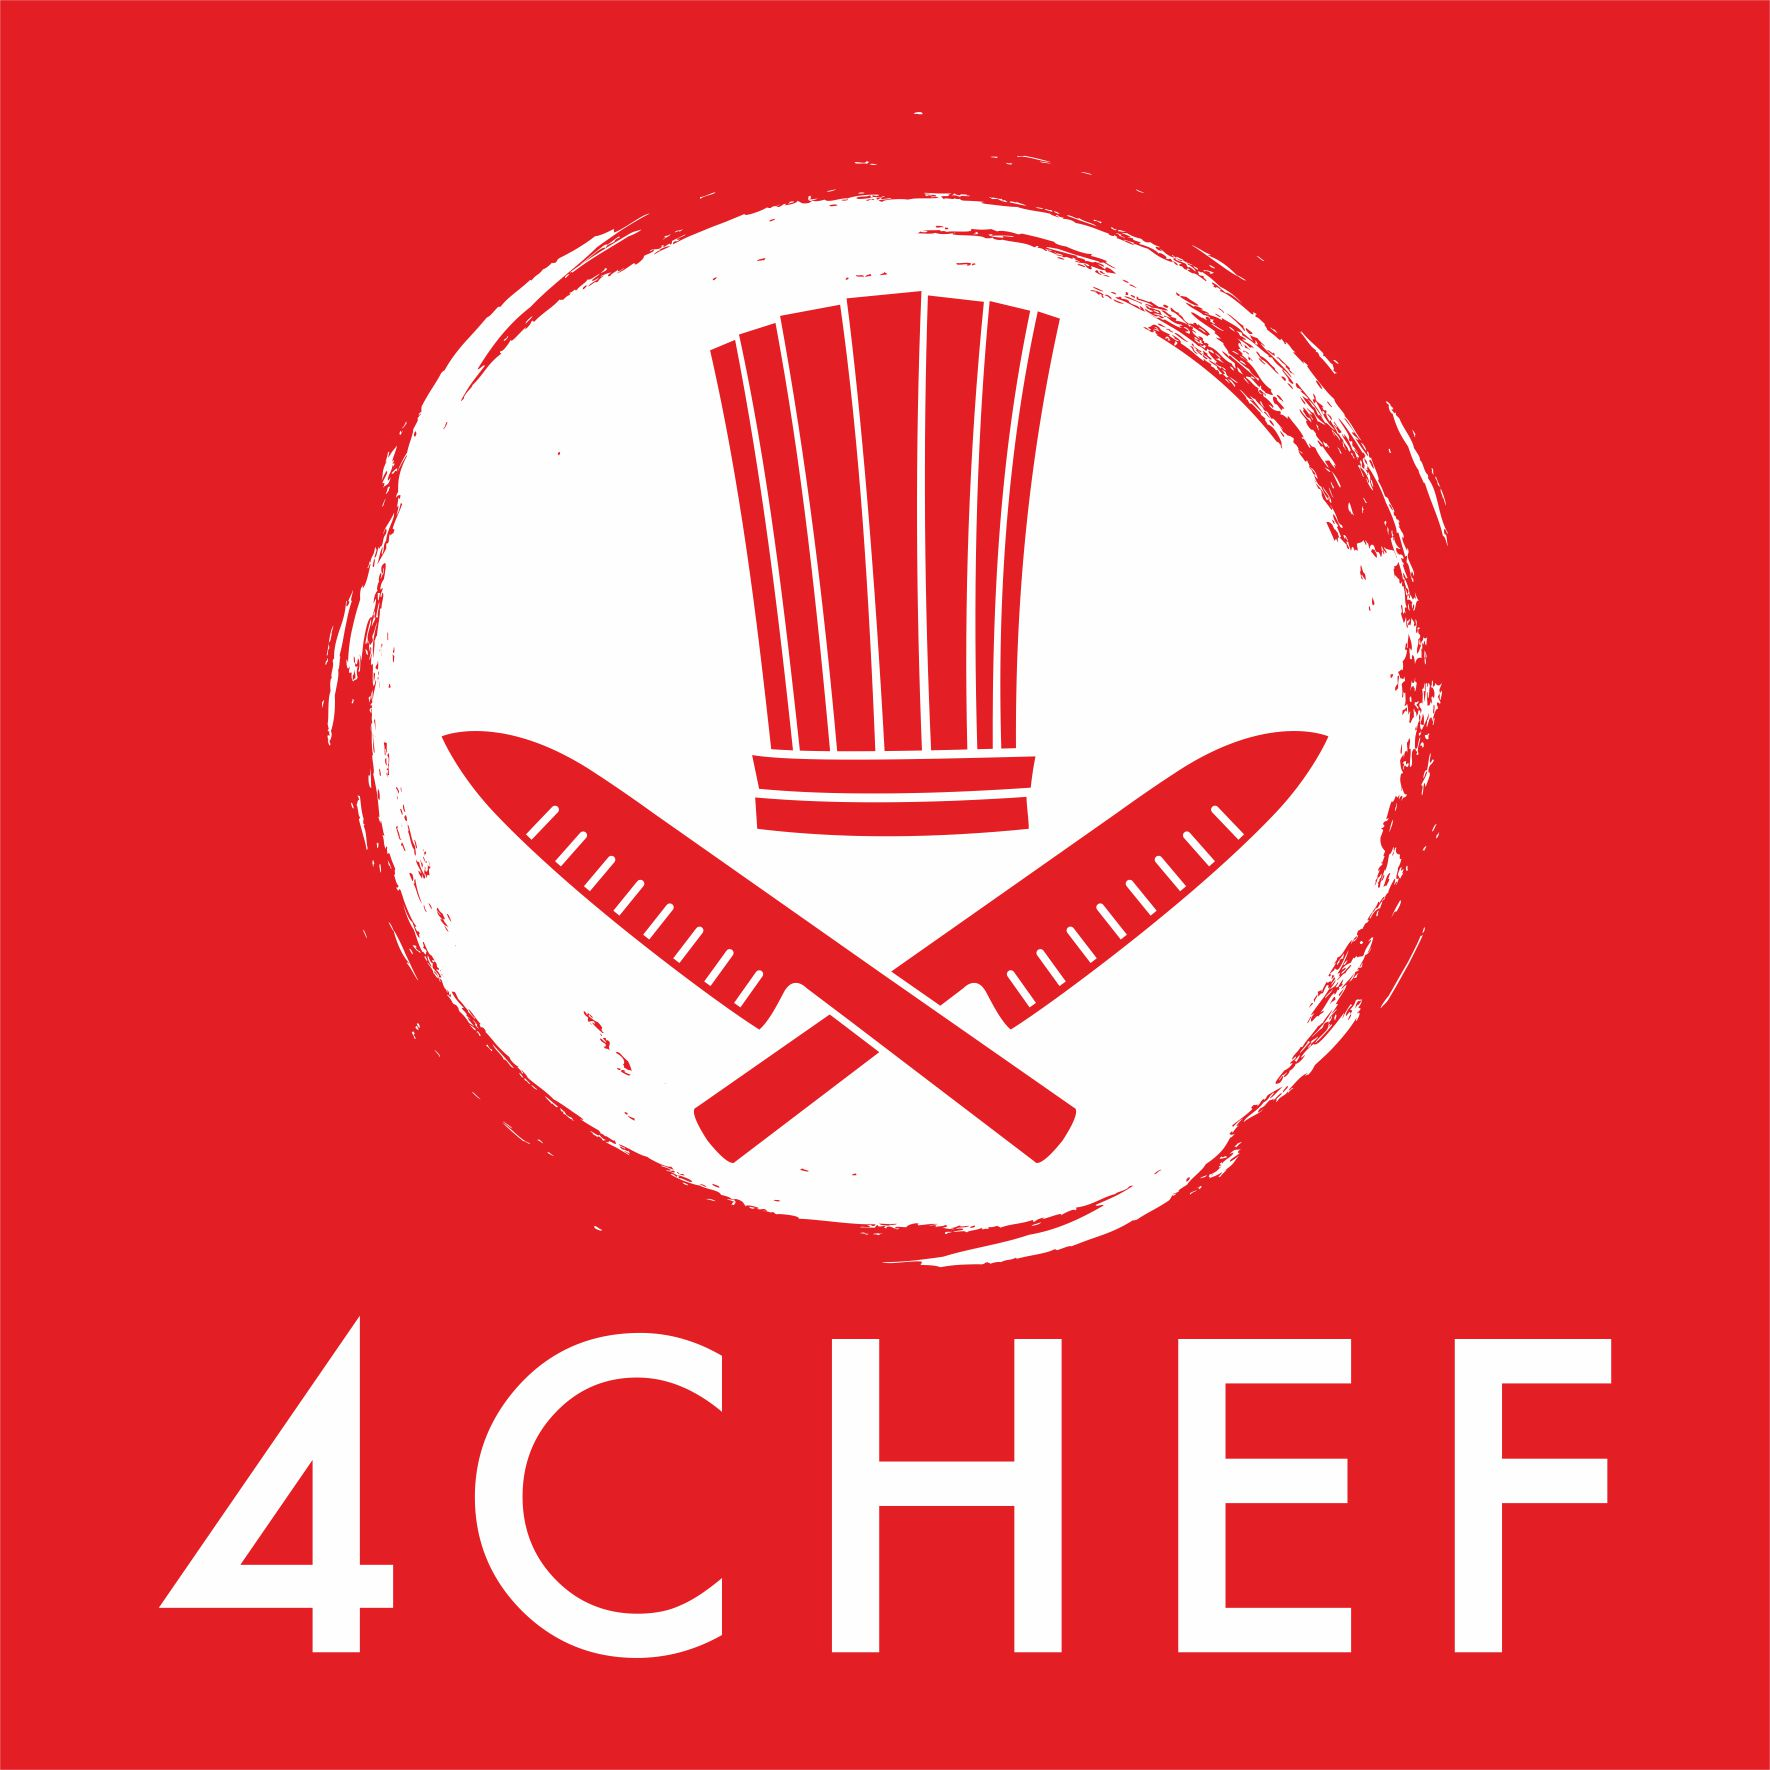 4chef logo chefstyle1